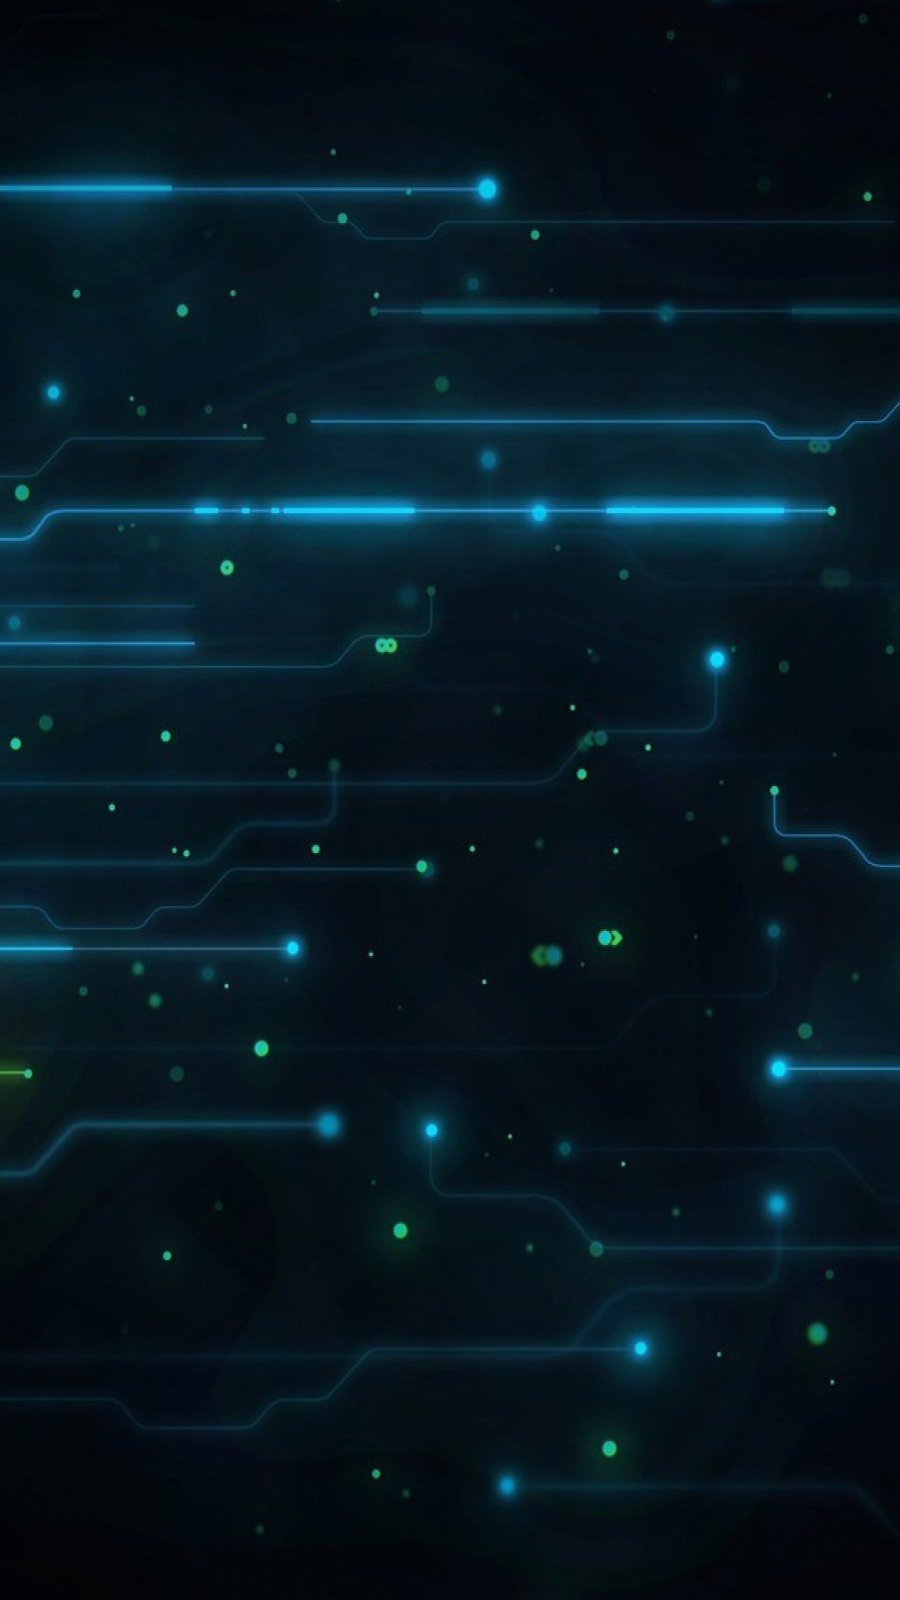 Abstract Tron Legacy HD Wallpapers Free Download